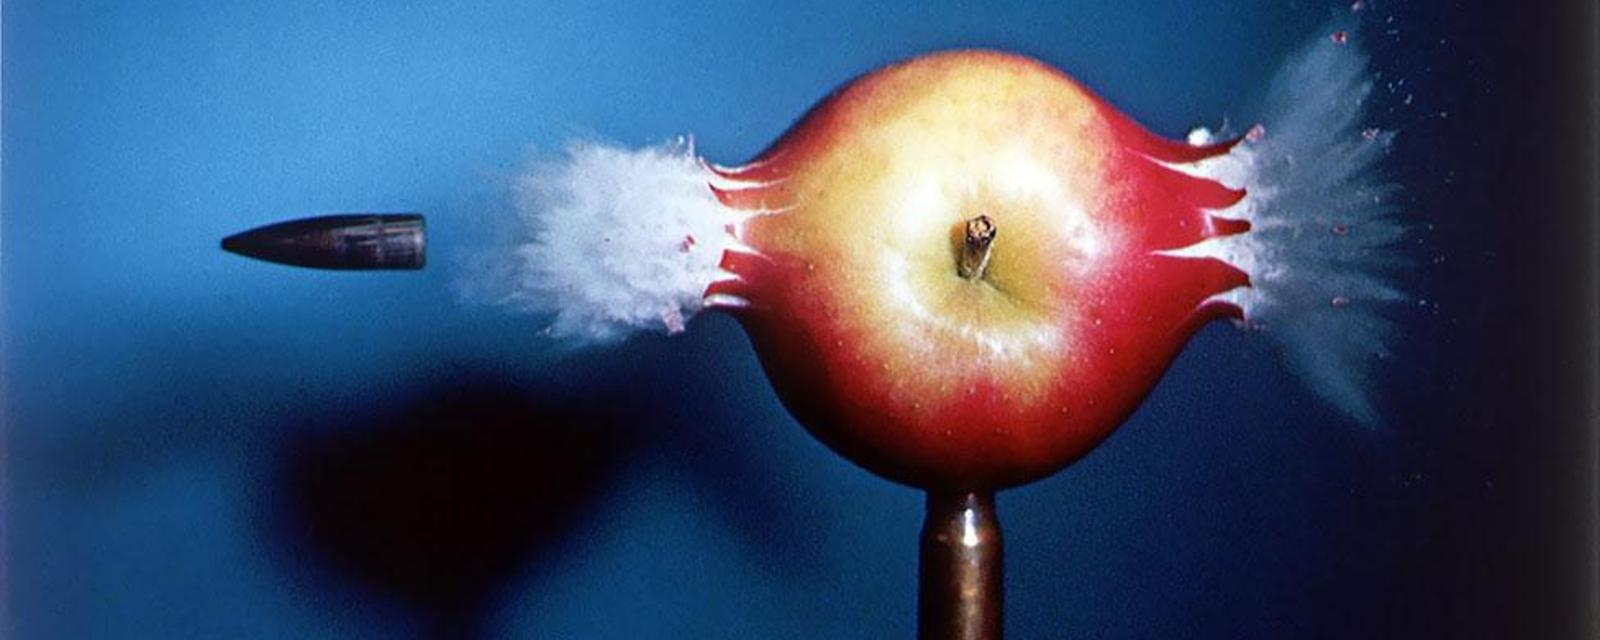 Bullet through apple